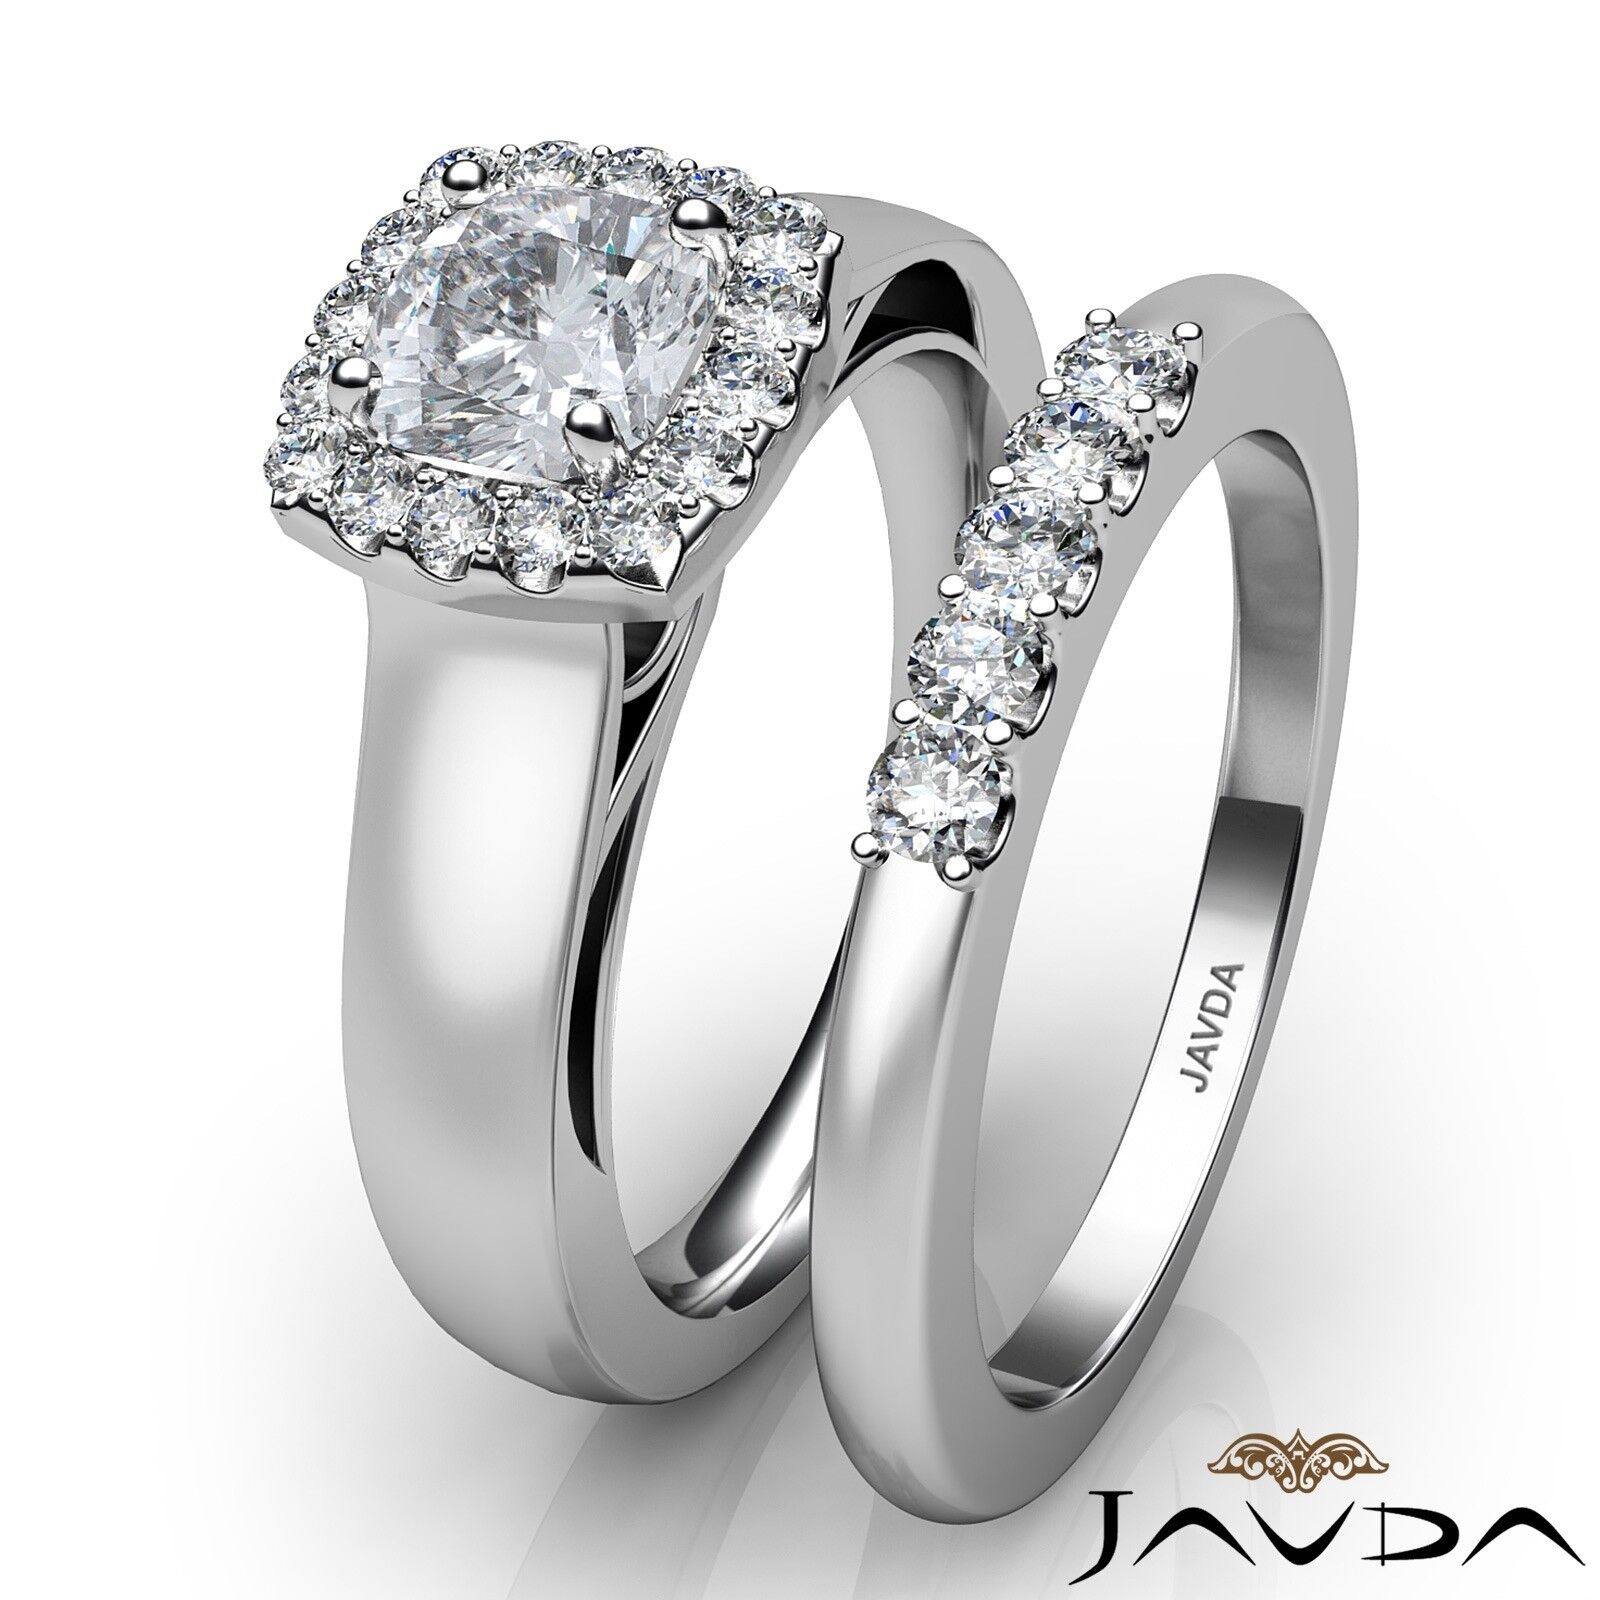 1.04ctw Solitaire Halo Bridal Cushion Diamond Engagement Ring GIA H-VS2 W Gold 3